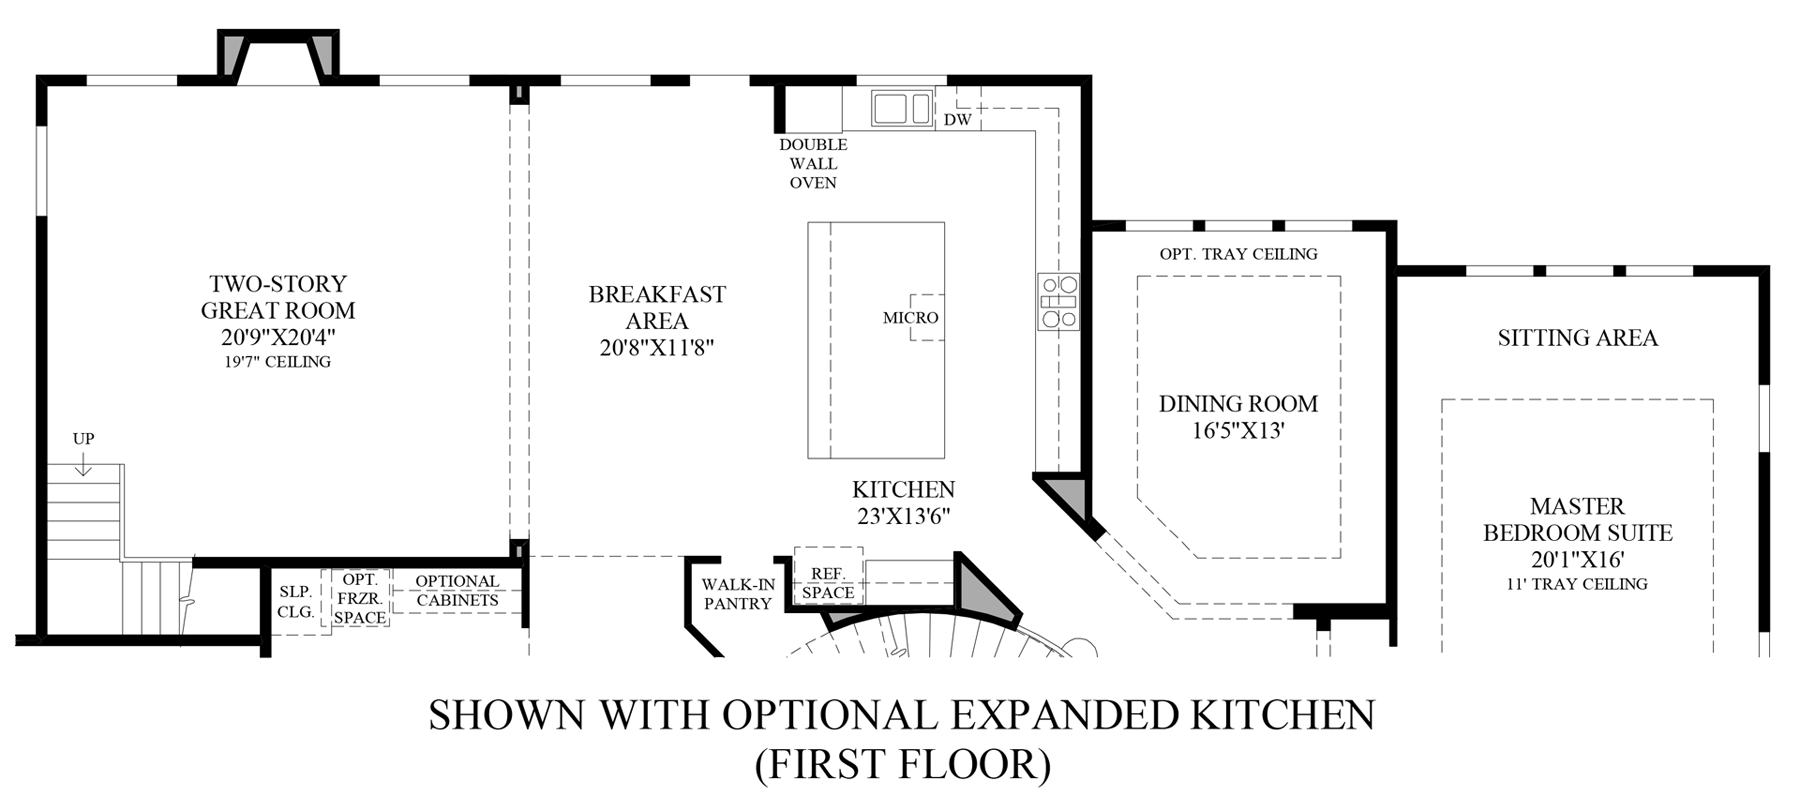 Small Kitchen Floor Plans Kitchen Plans And Designs Resume Format Download Pdf likewise Kitchen Floor Plans With Island And Walk In Pantry moreover Kitchen Floor Plans also Kitchen Floor Plan Layouts besides Blue Print Of Kitchen Of Restaurant. on eat in kitchens layouts